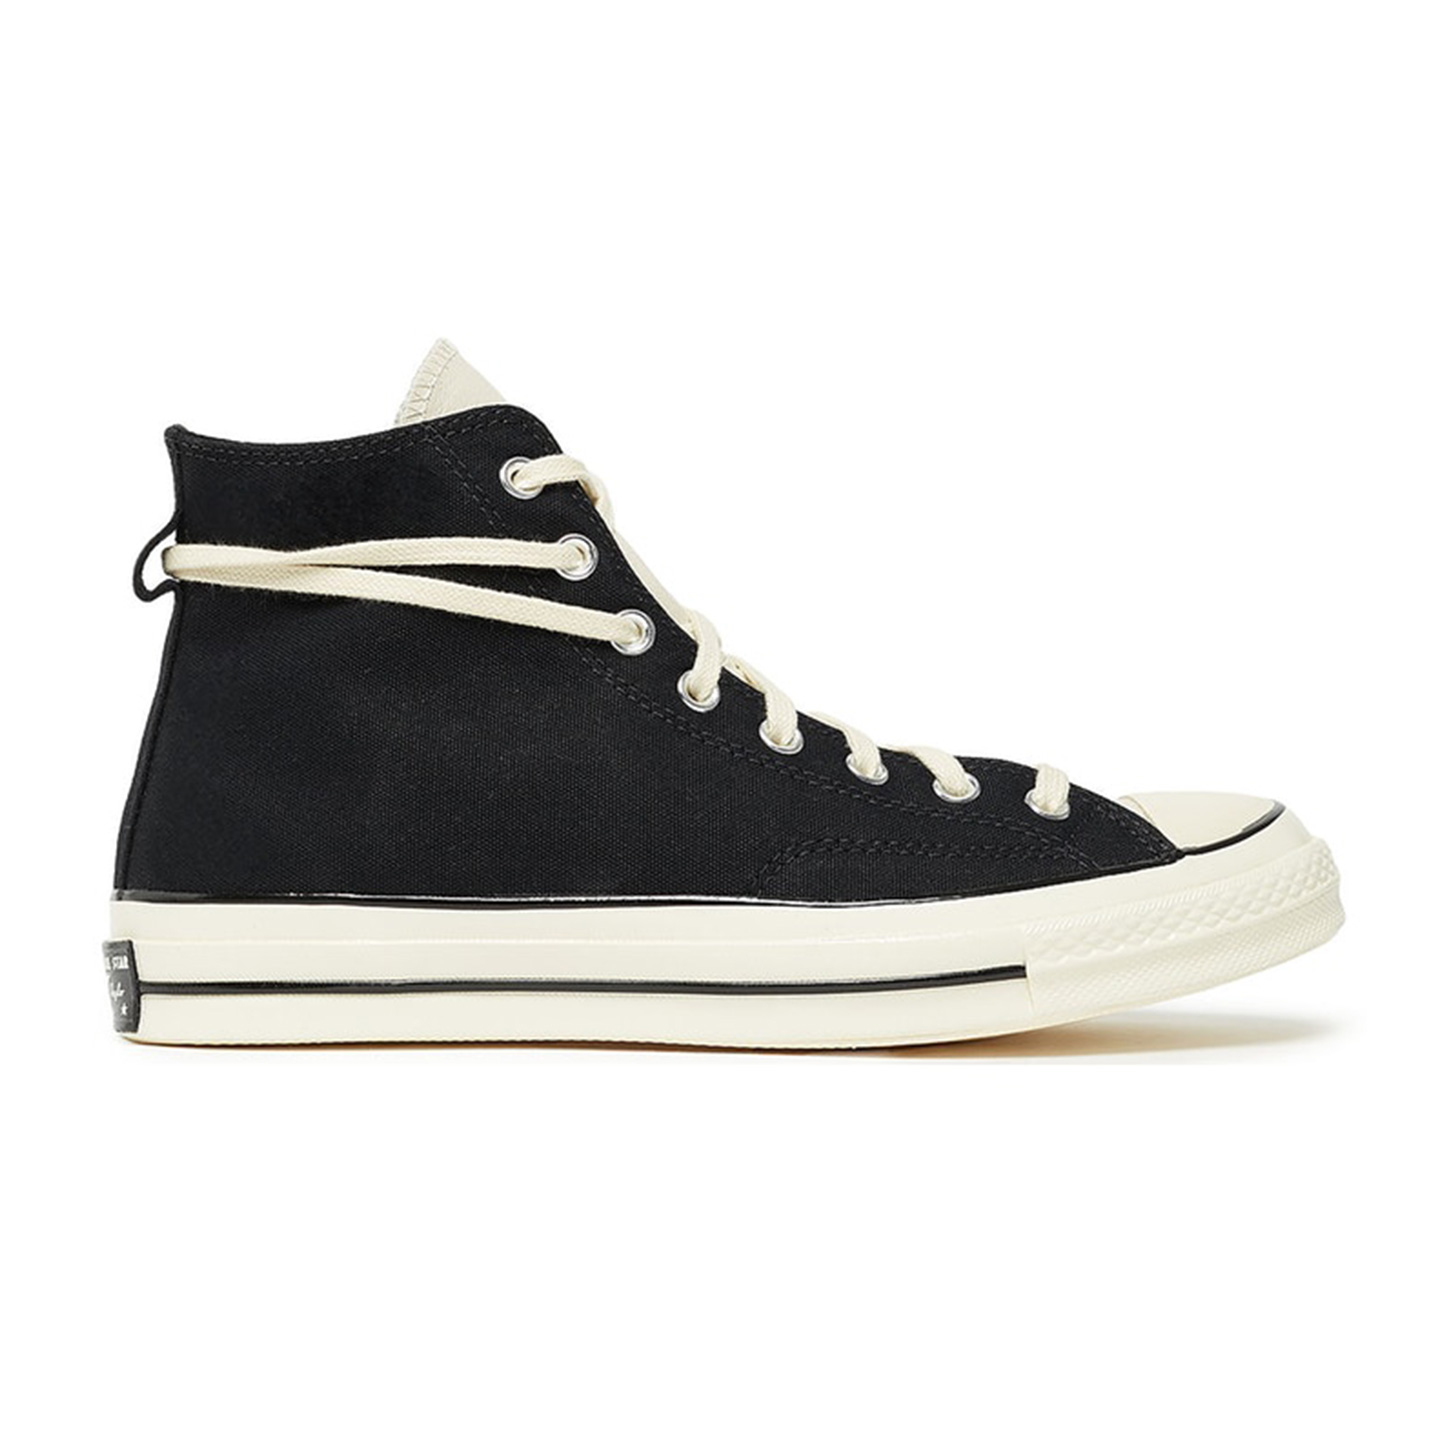 Converse Chuck Taylor All Star 70s HI Fear Of God Black Natural